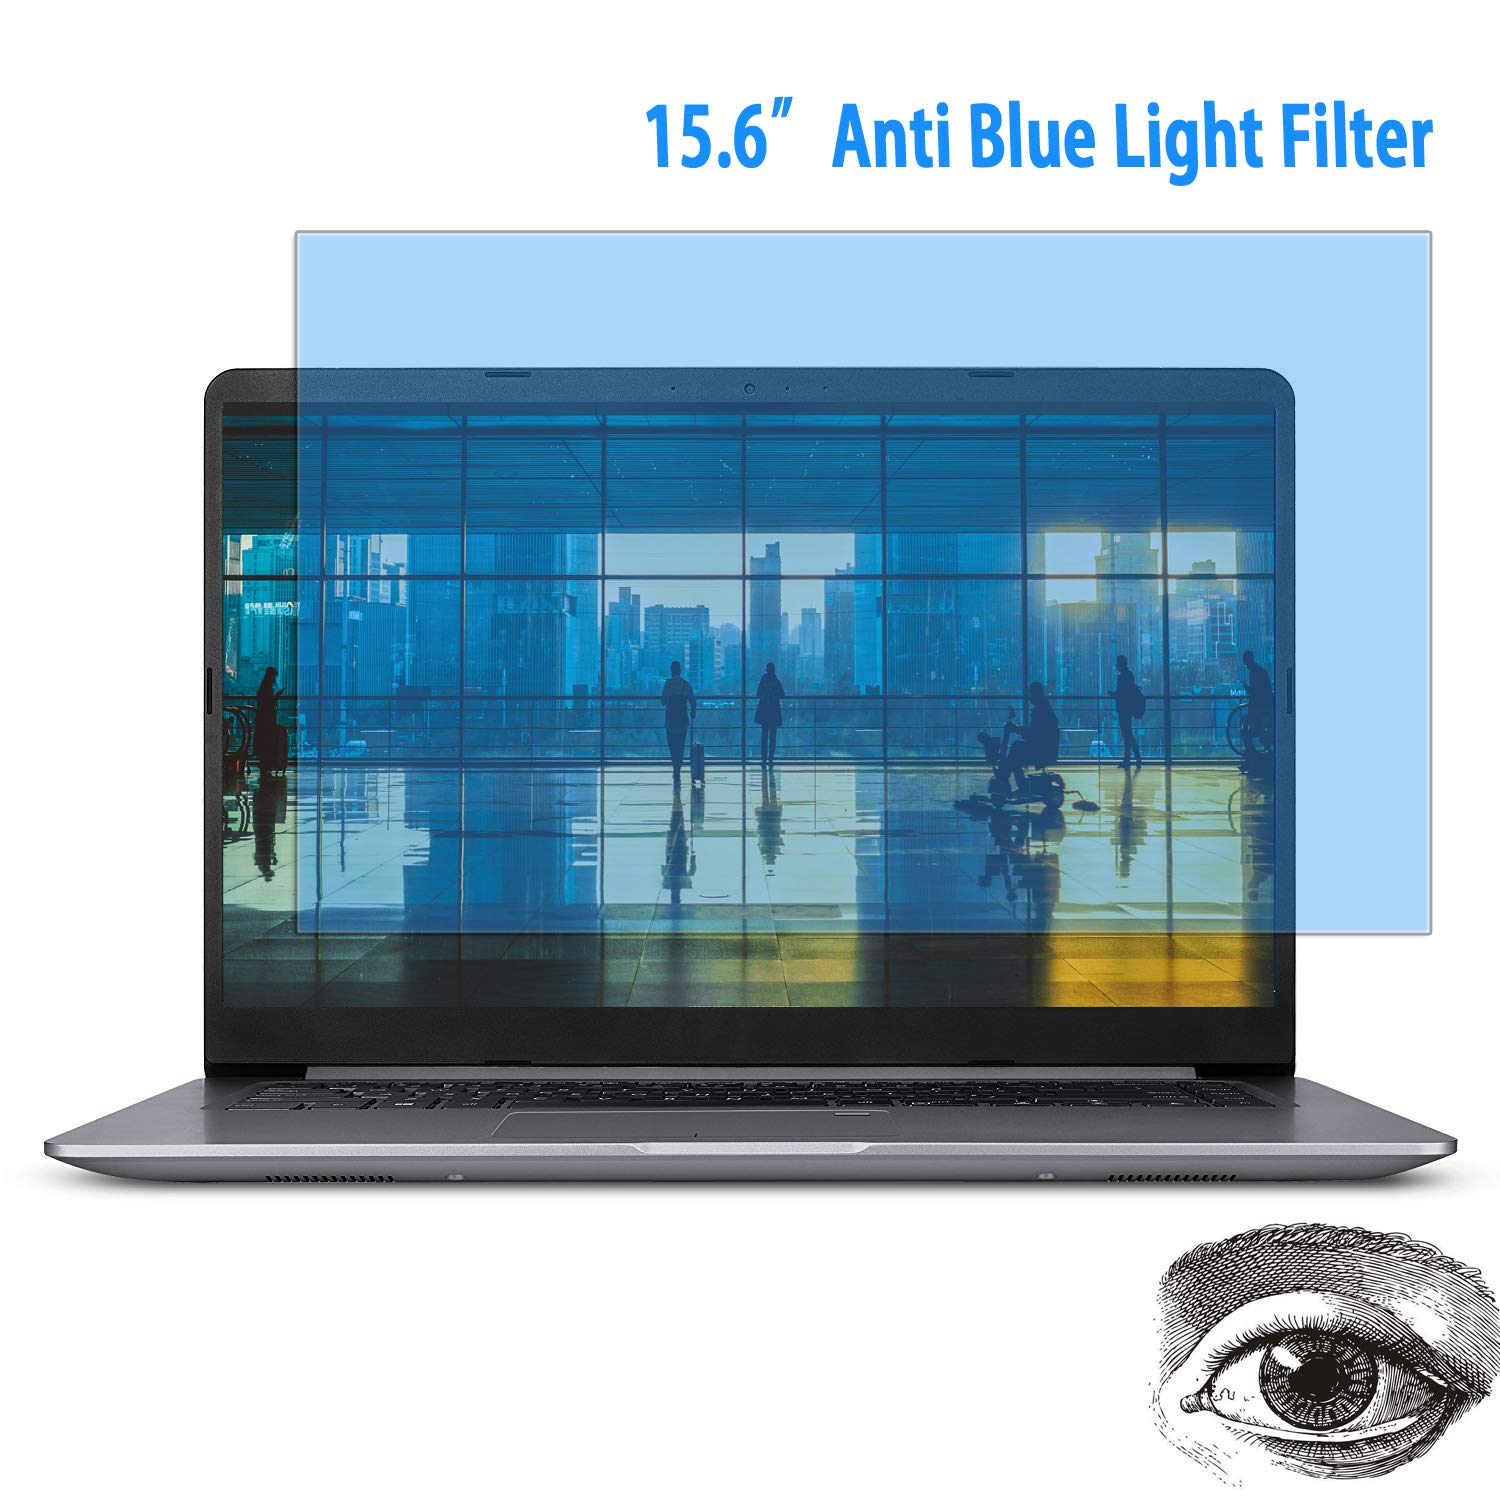 (2 Pack) 15.6 Inch Laptop Anti Blue Light Screen Protector, Eye Protection Blue Light Filter Blocks Reduce Eye Fatigue and Eye Strain for 15.6 incheswith 16:9 Aspect Ratio Laptop